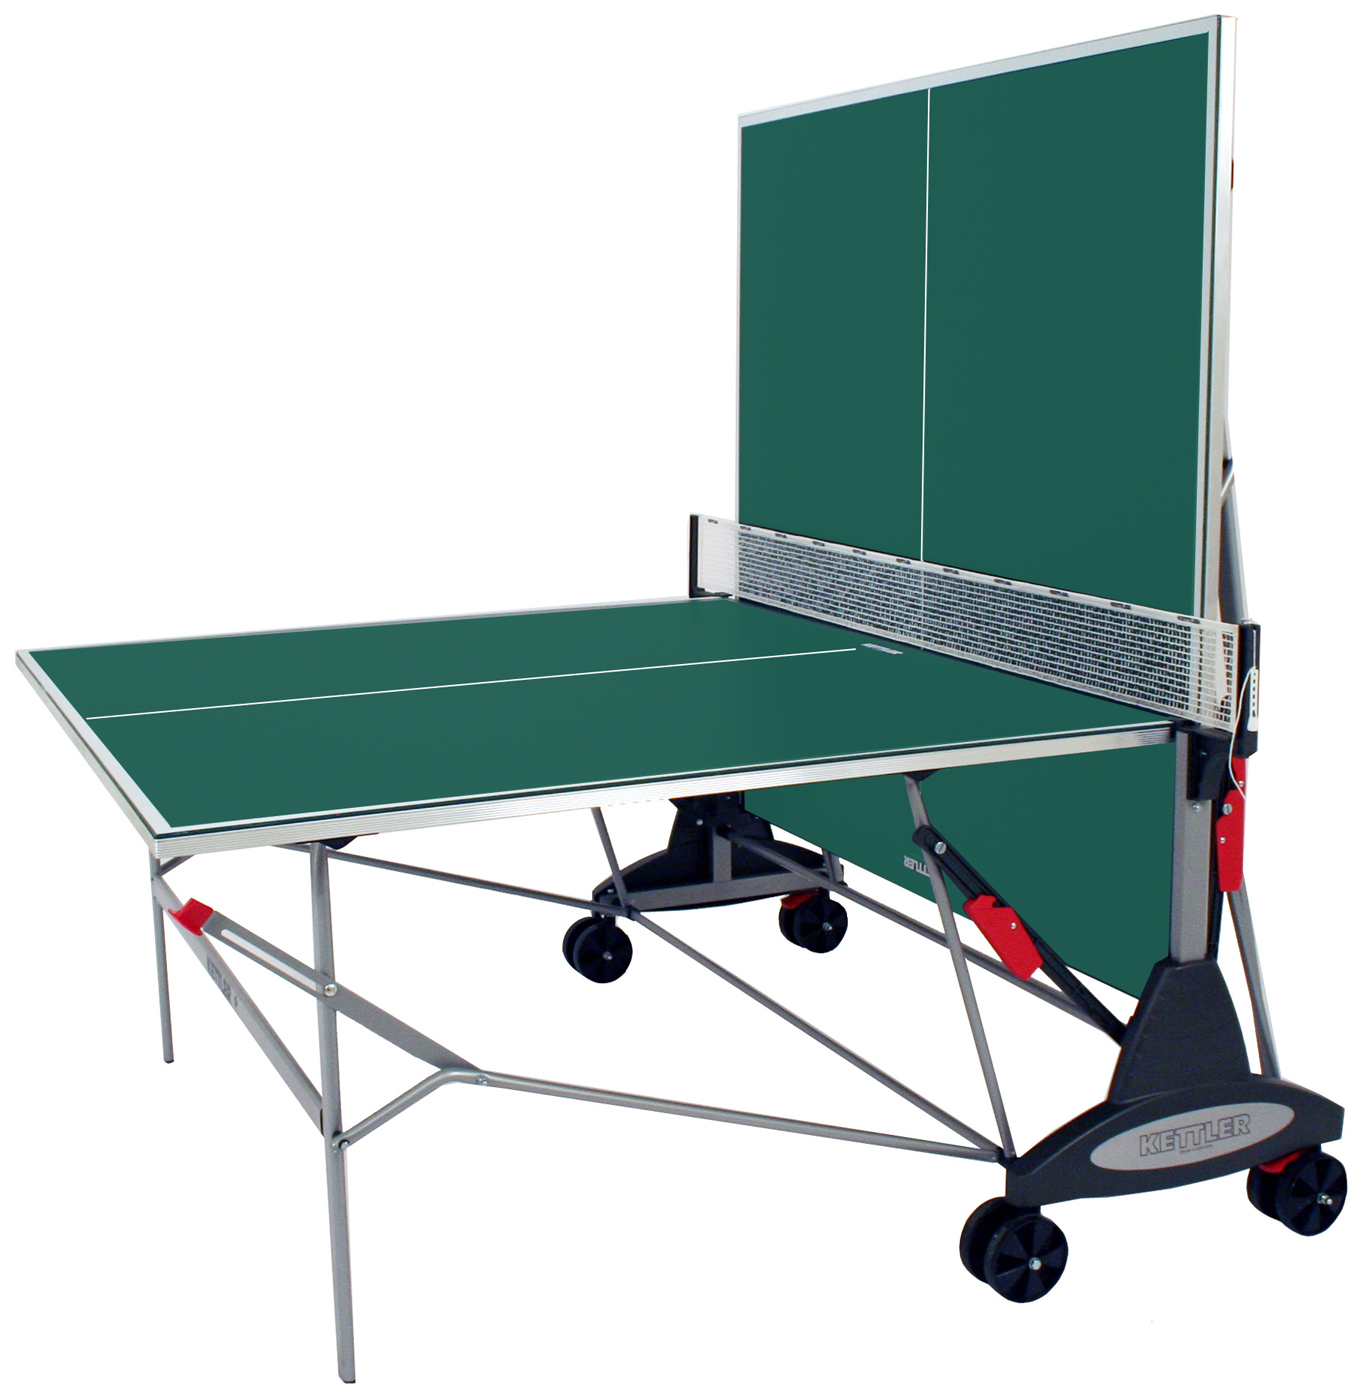 Kettler stockholm gt indoor ping pong table for Table kettler